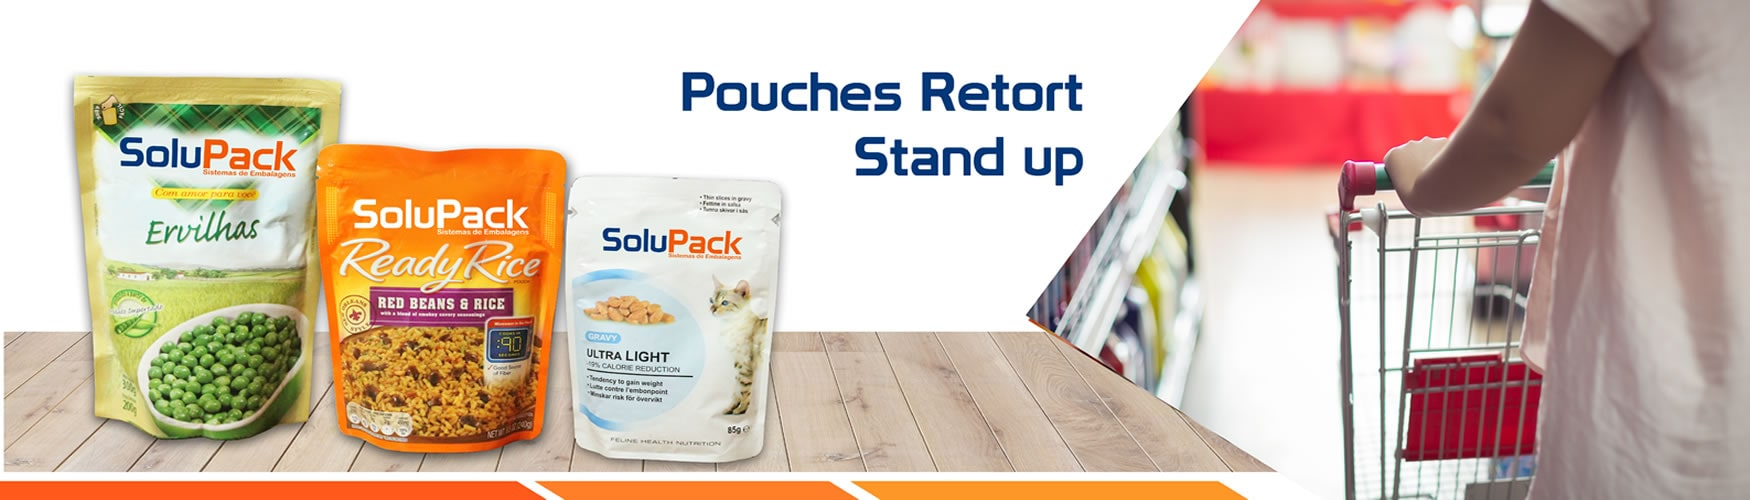 Pouches Retort Stand UP